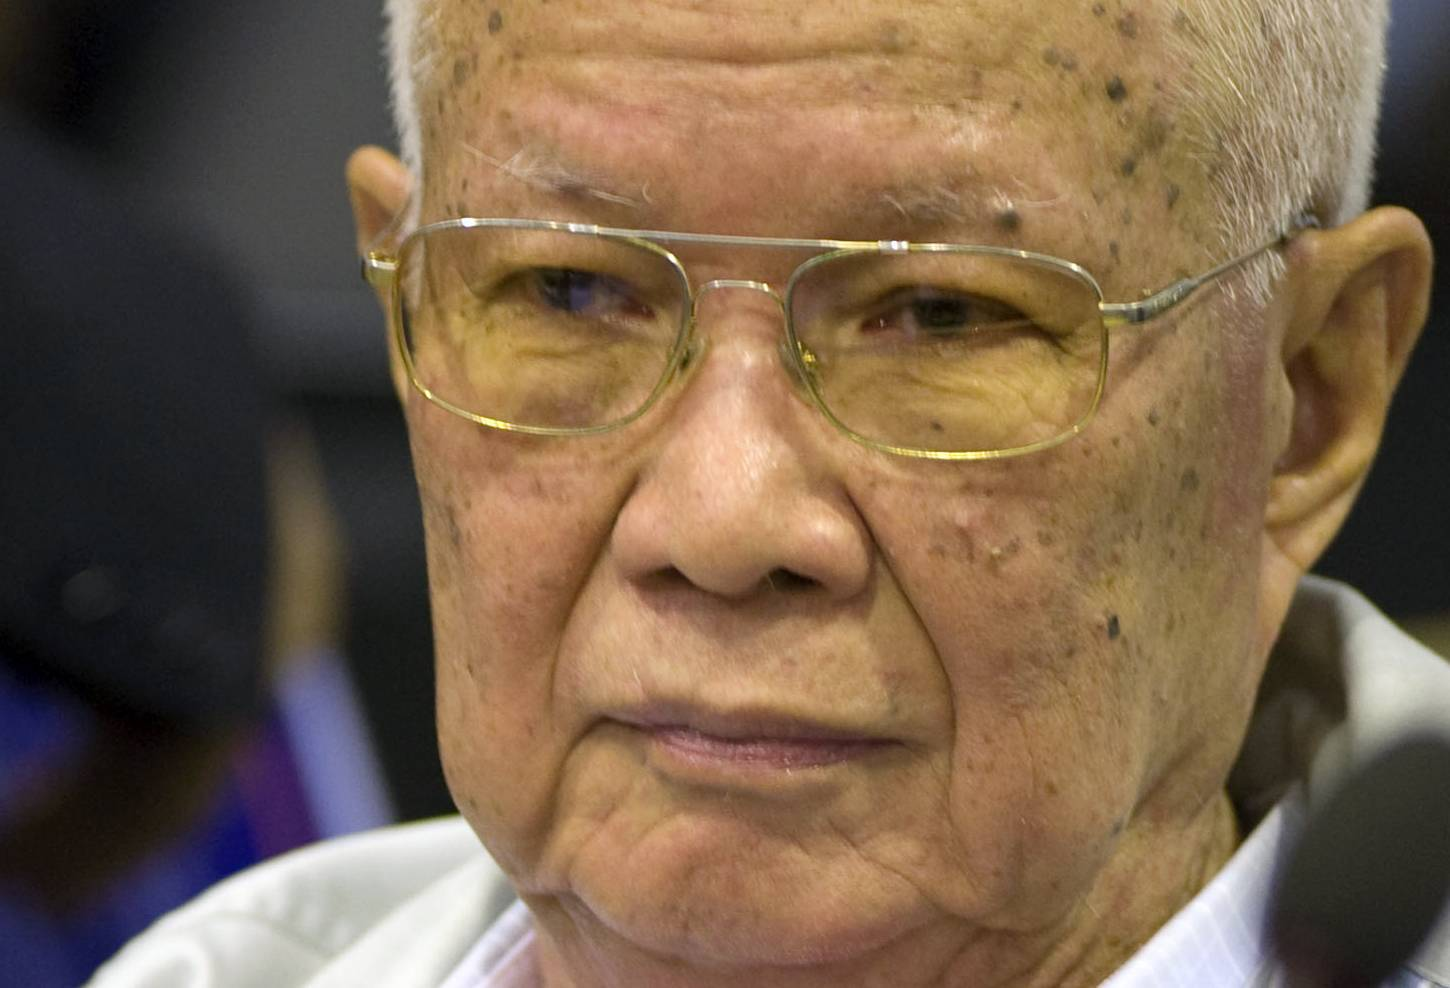 Khieu Samphan, the Khmer Rouge's former head of state. Three and a half decades after the genocidal rule of Cambodia's Khmer Rouge ended, the U.N.-backed tribunal on Thursday sentenced Khieu Samphan and Nuon Chea, two top leaders of the former regime, to life in prison for crimes against humanity during the country's 1970s terror period that left close to 2 million people dead.